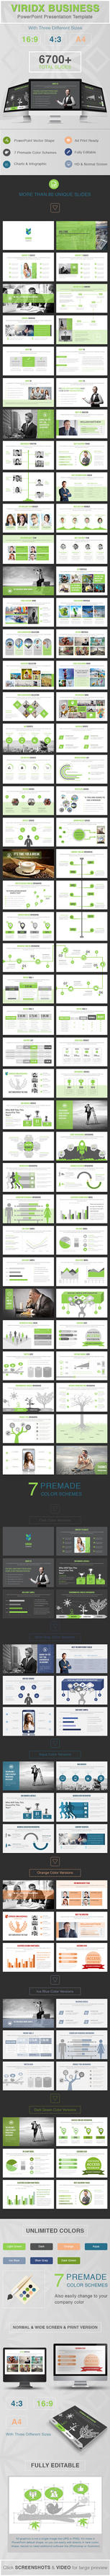 Viridx Business PowerPoint Presentation Template by dotnpix